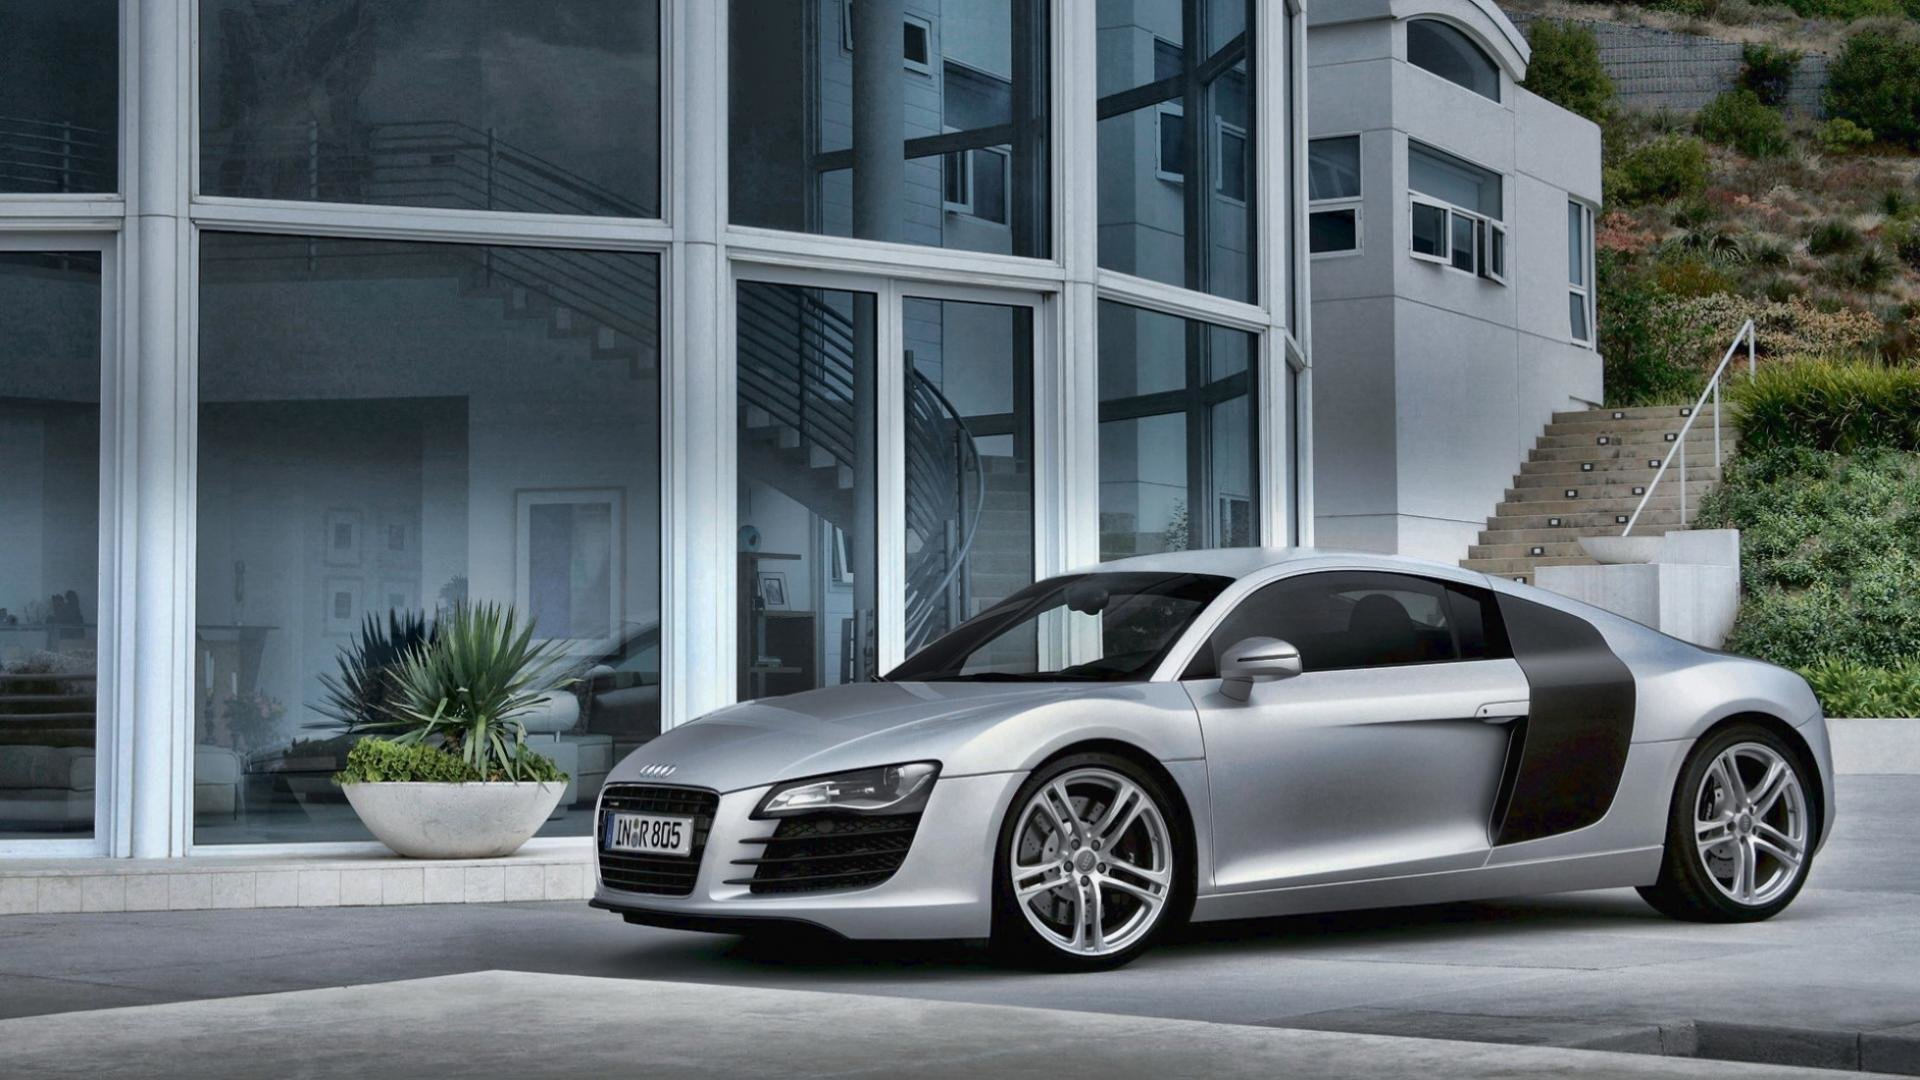 High Resolution Audi Full Hd 1080p Wallpaper Id 431456 For Computer